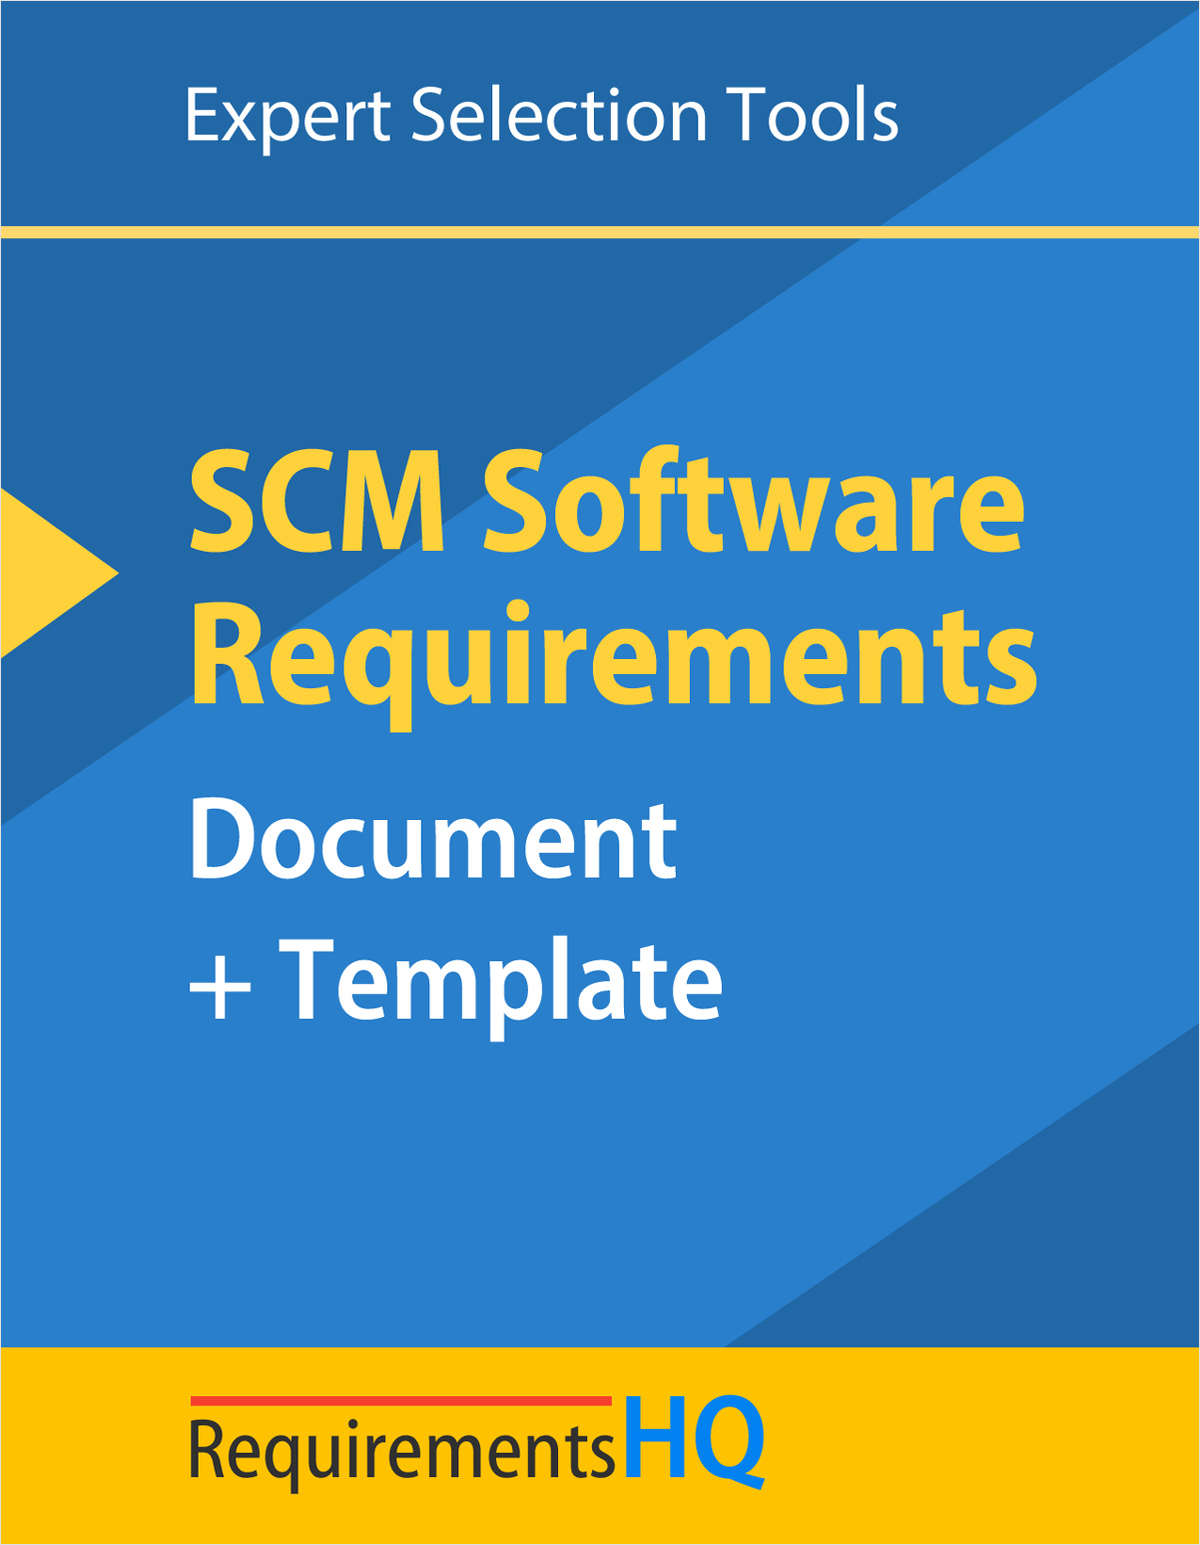 Supply Chain Management Software Requirements Document & Template